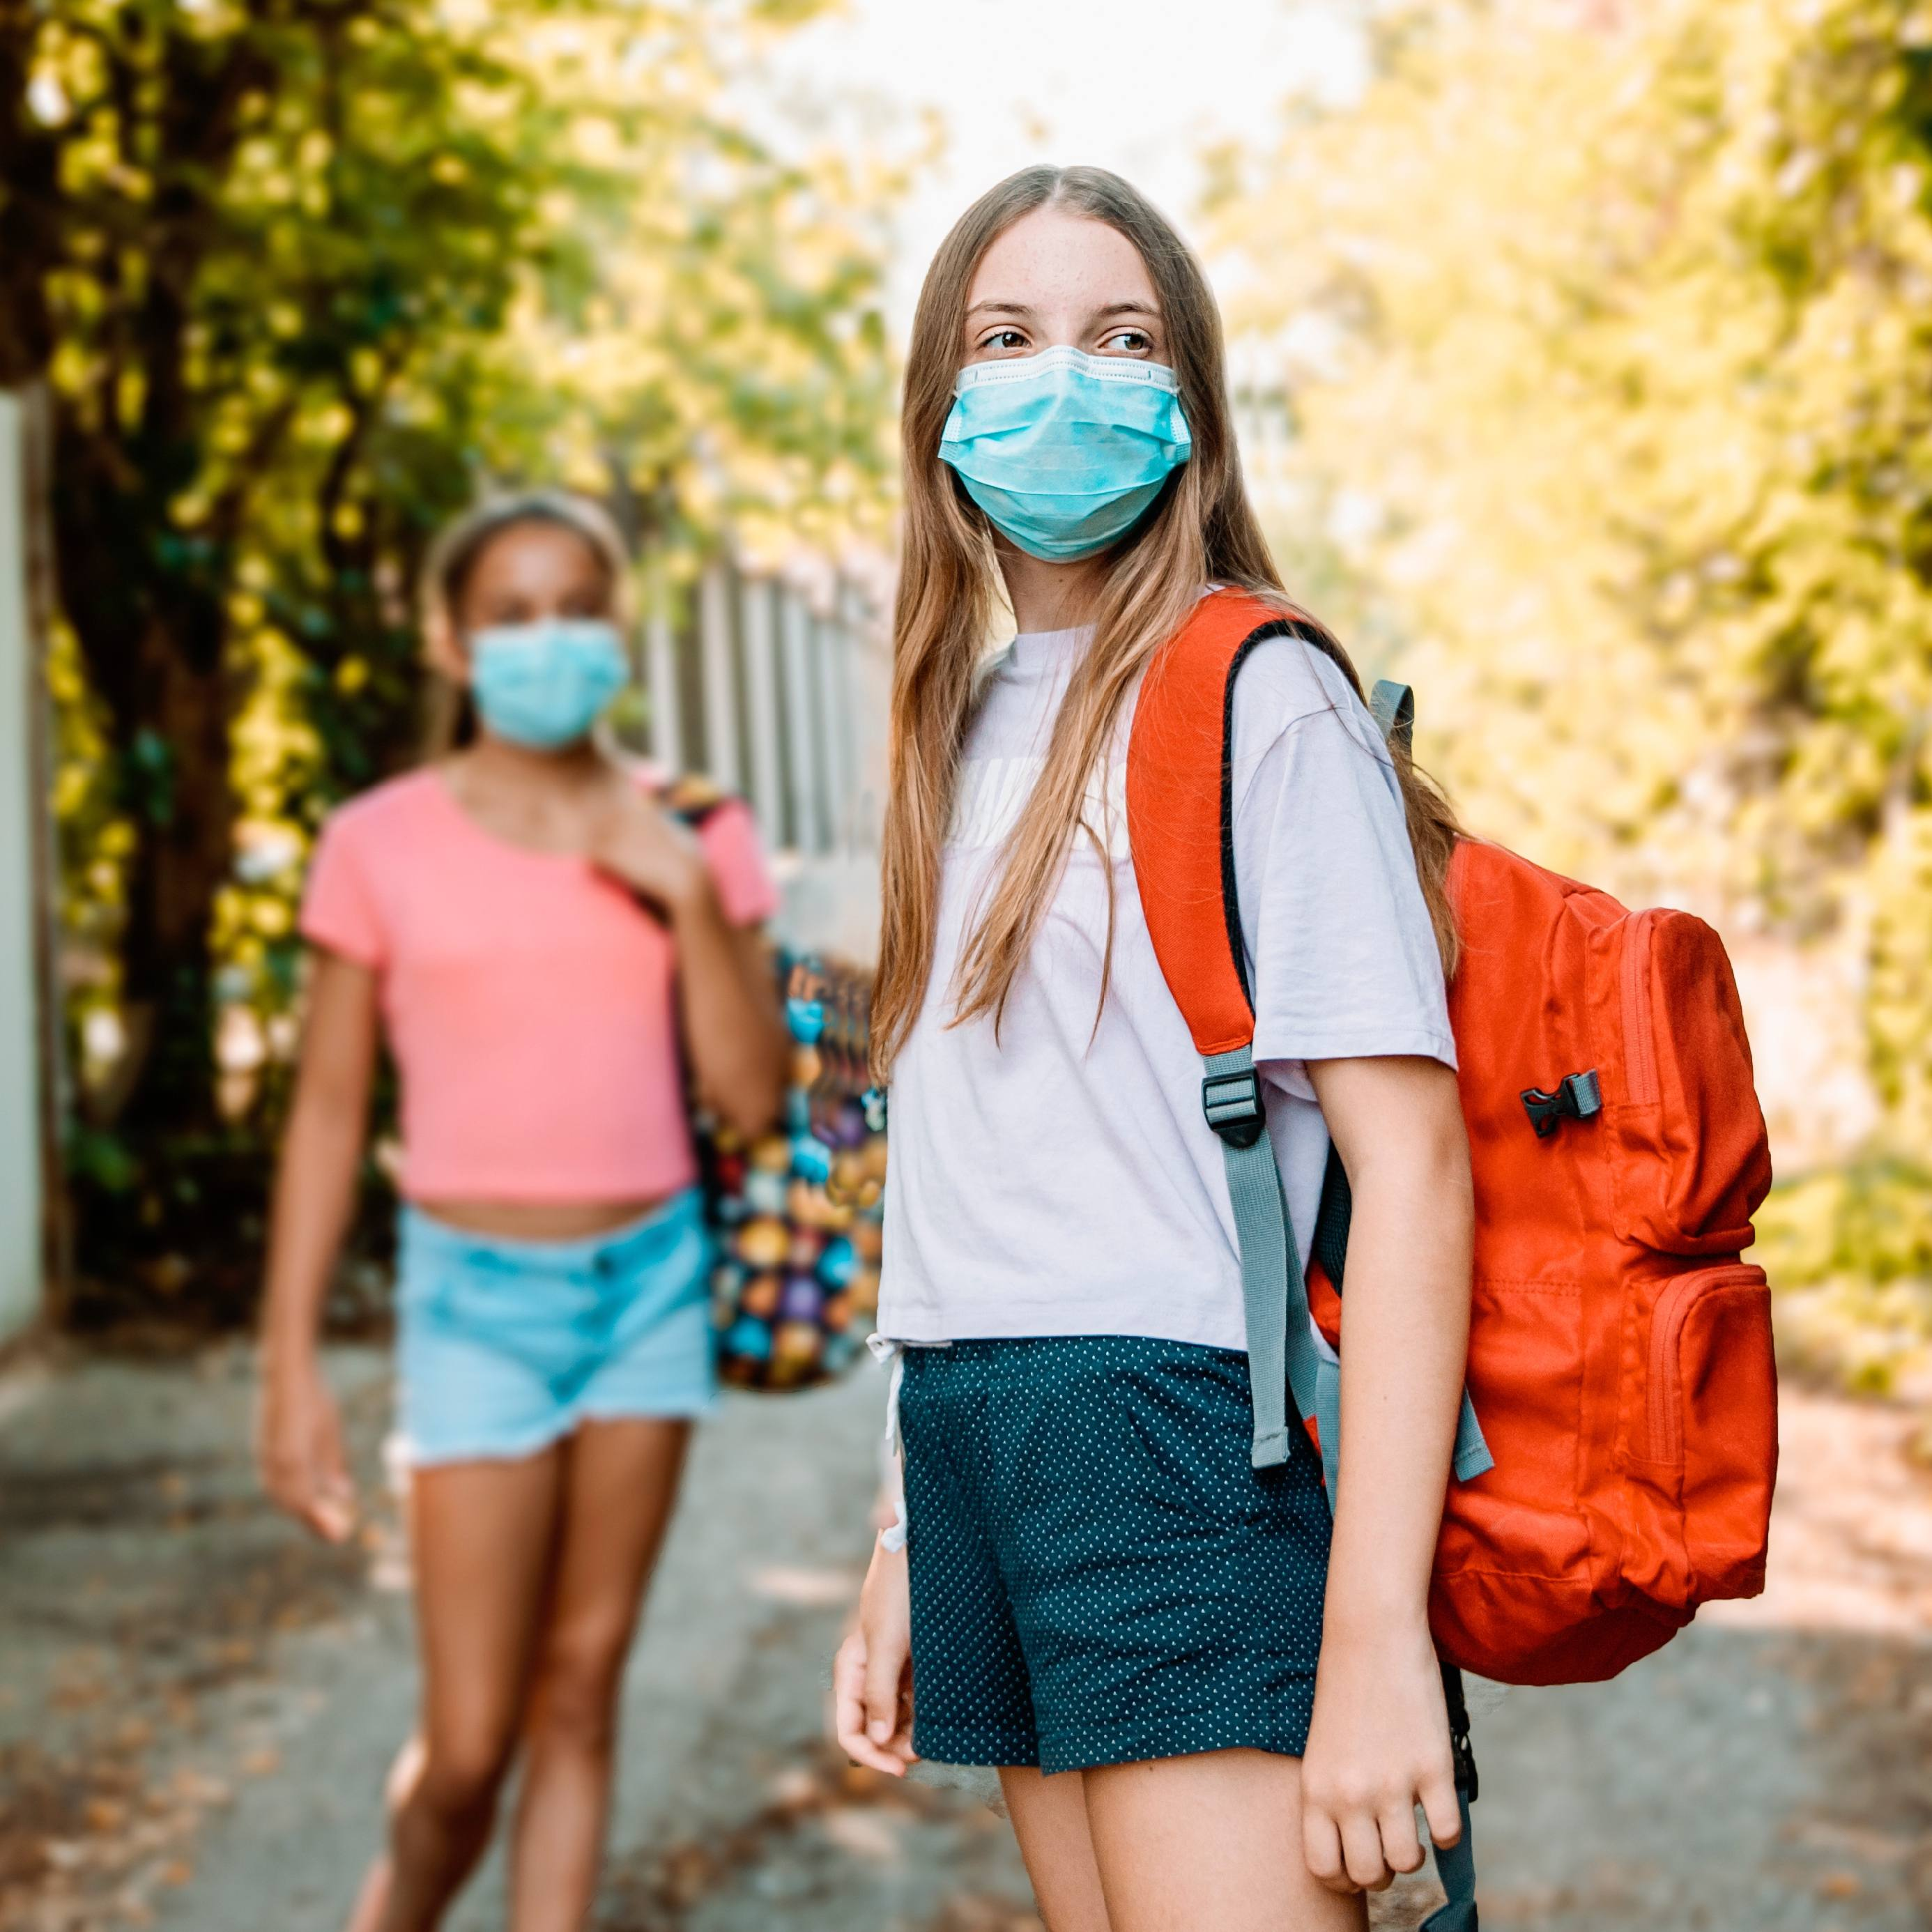 a young white teenage girl outside wearing a mask and a school backpack, walking with a friend